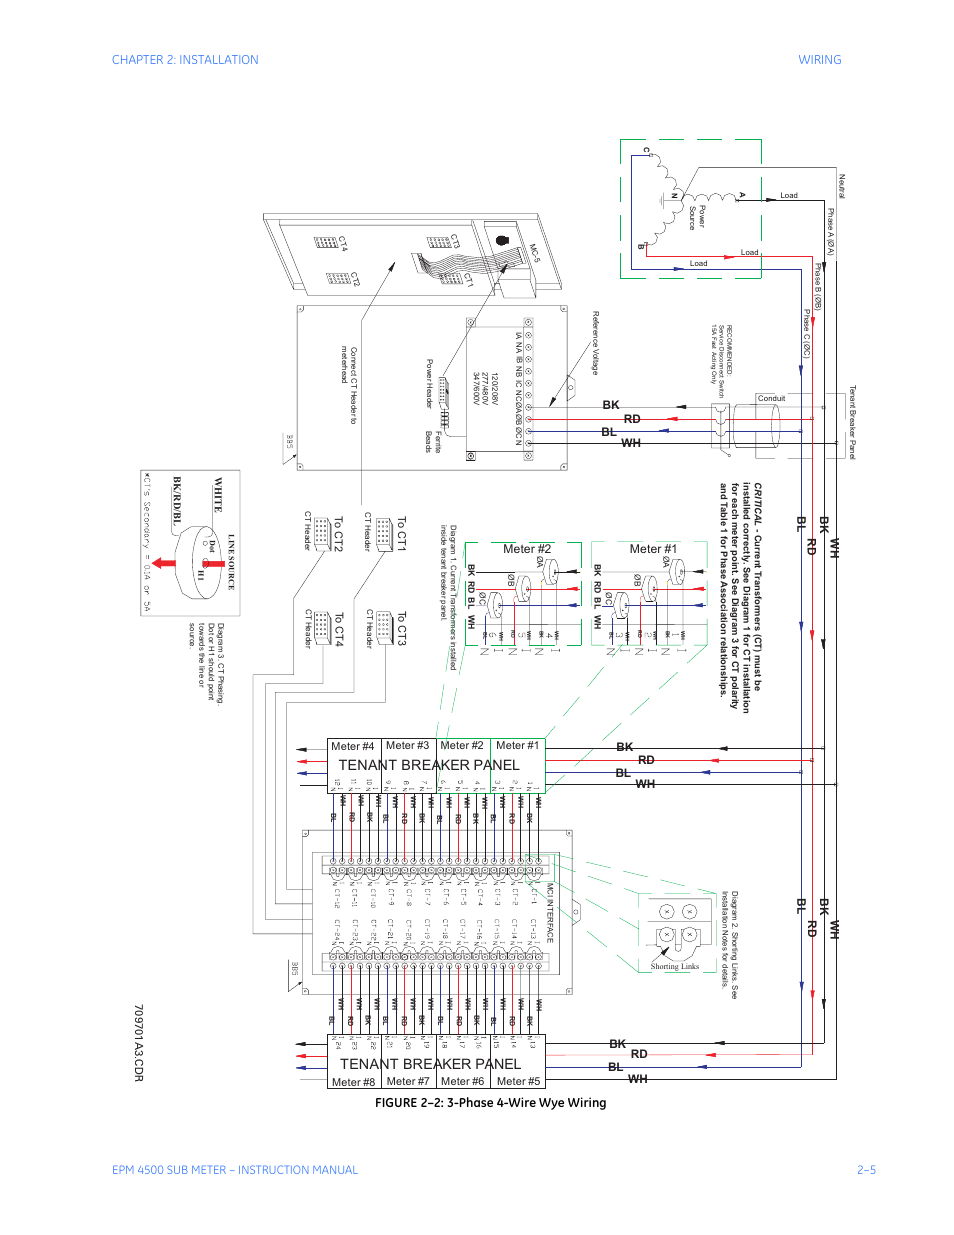 Phase Wire Panelboard Wiring Diagram on